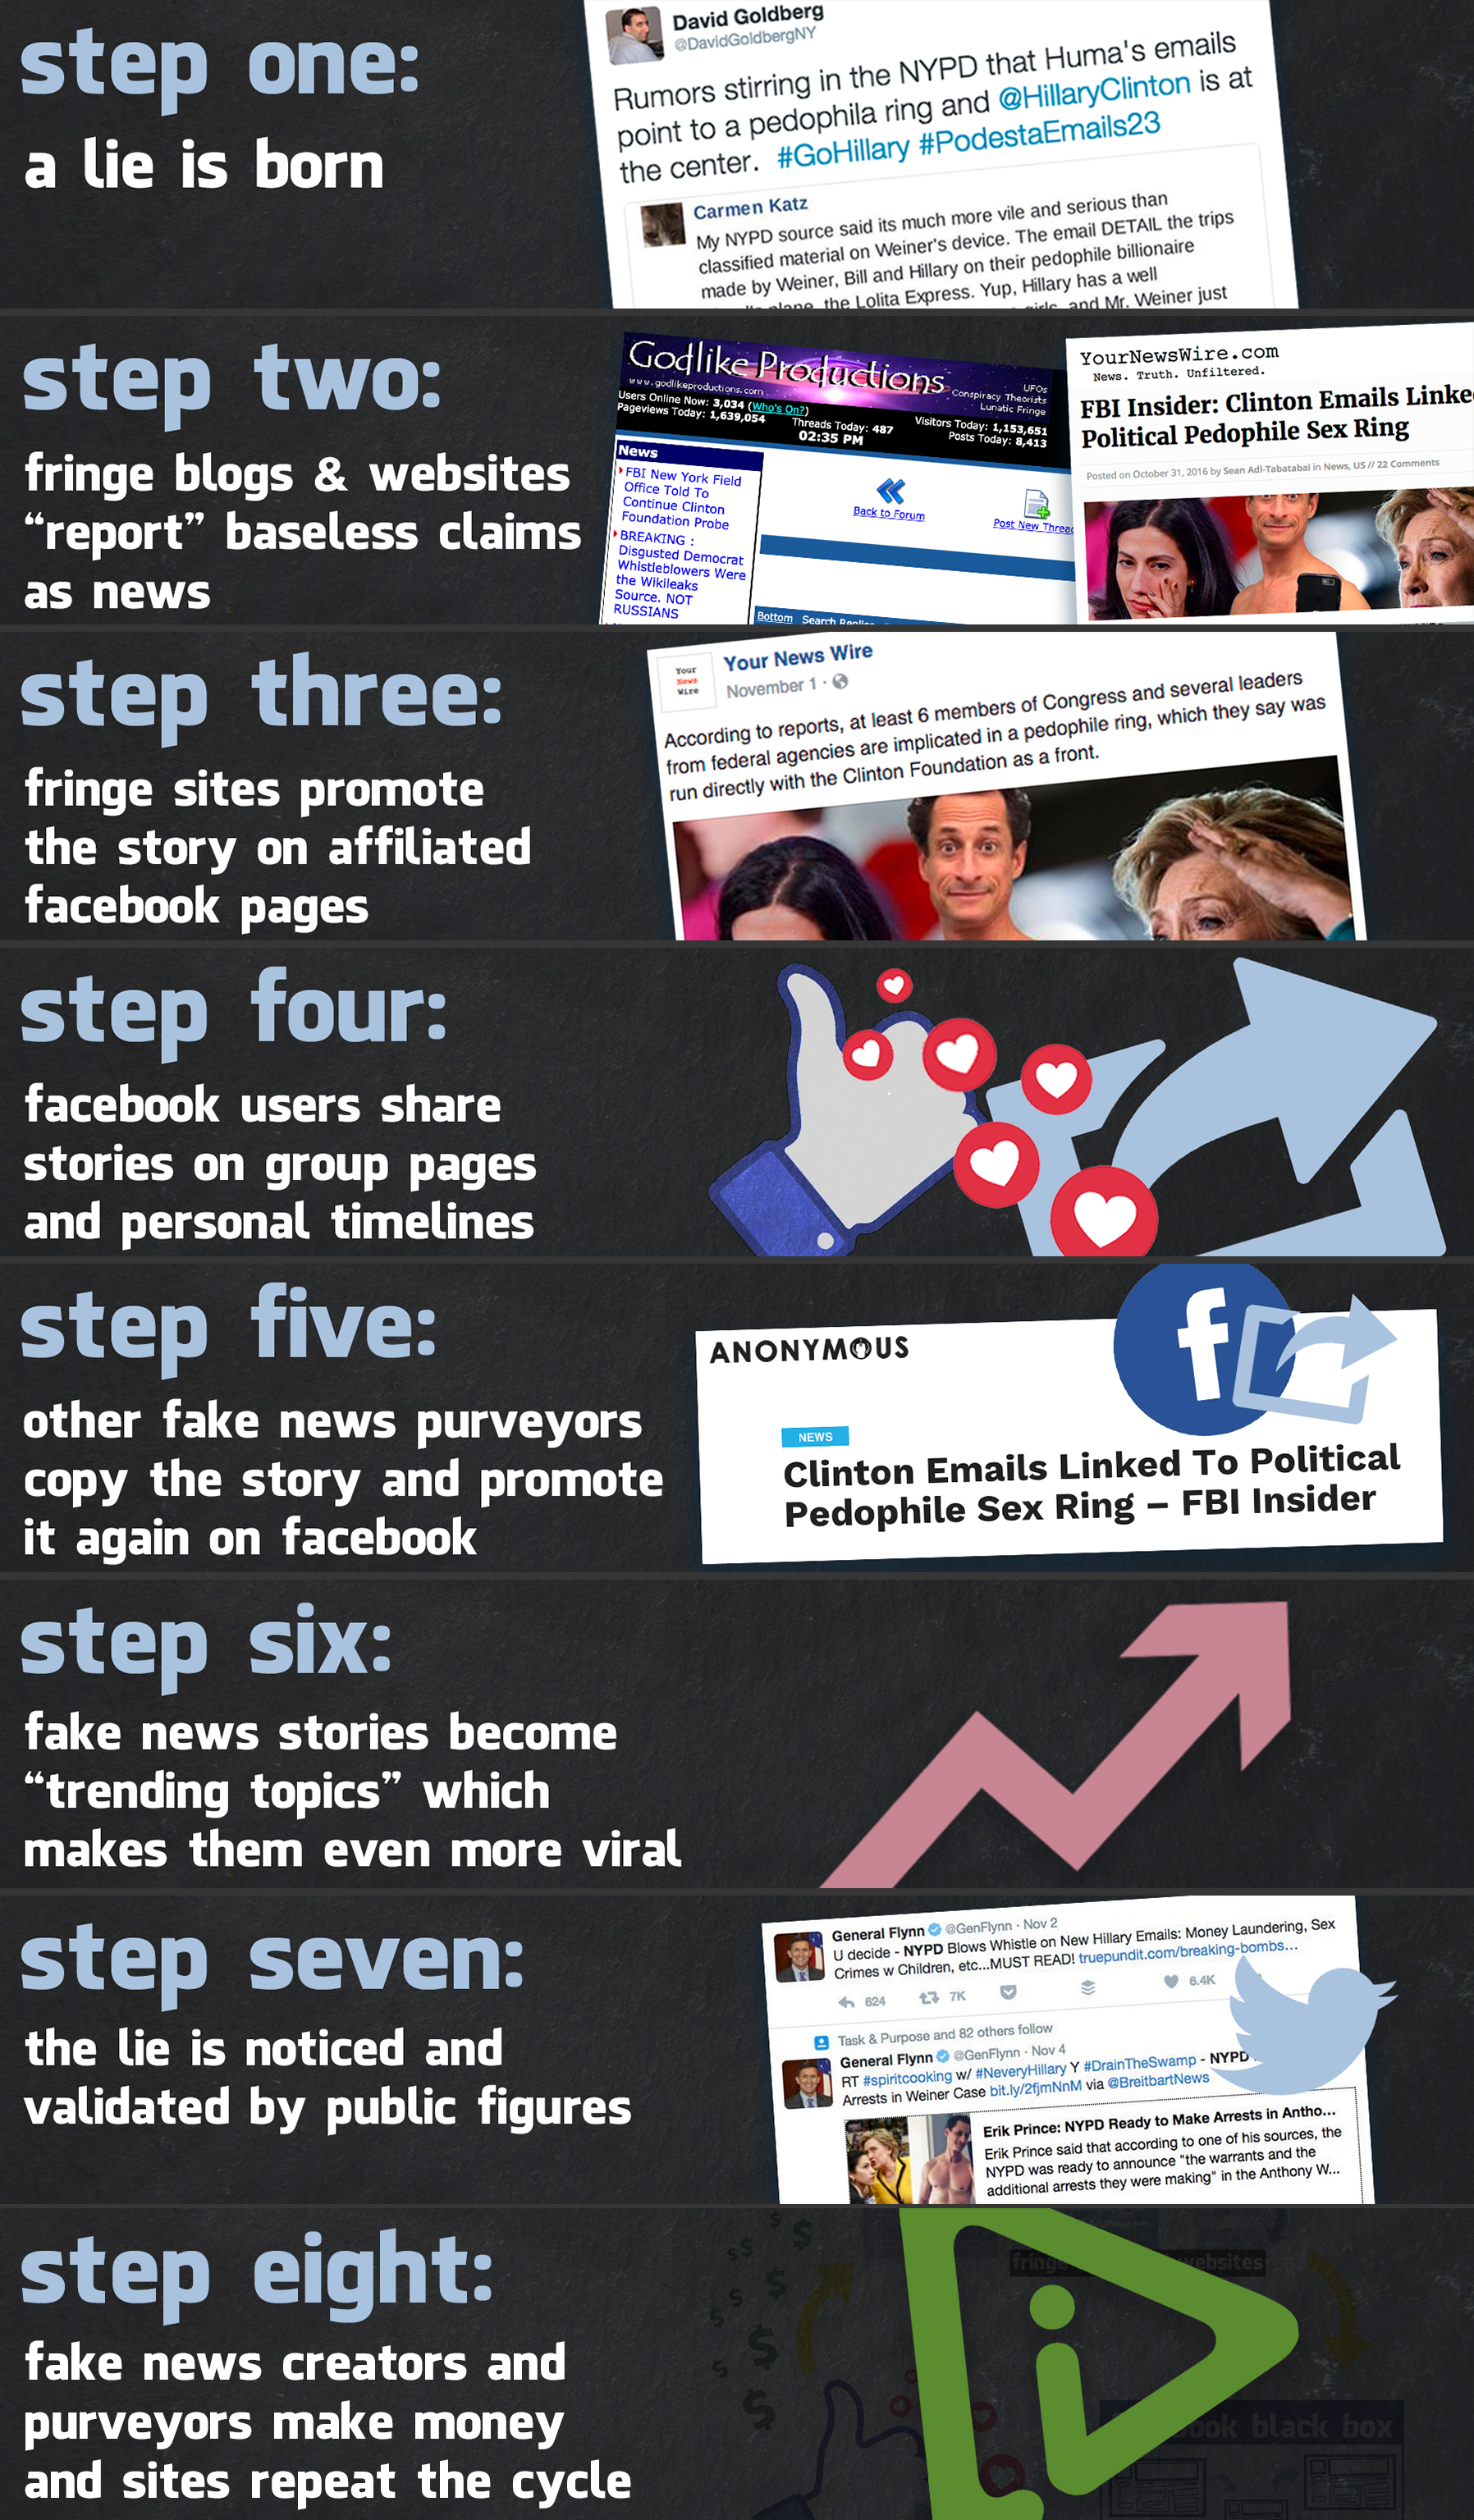 how facebook s fake news ecosystem empowers total lies has had and will continue to have real life consequences unless facebook tightens its rules for how it is allowed to thrive on its platform